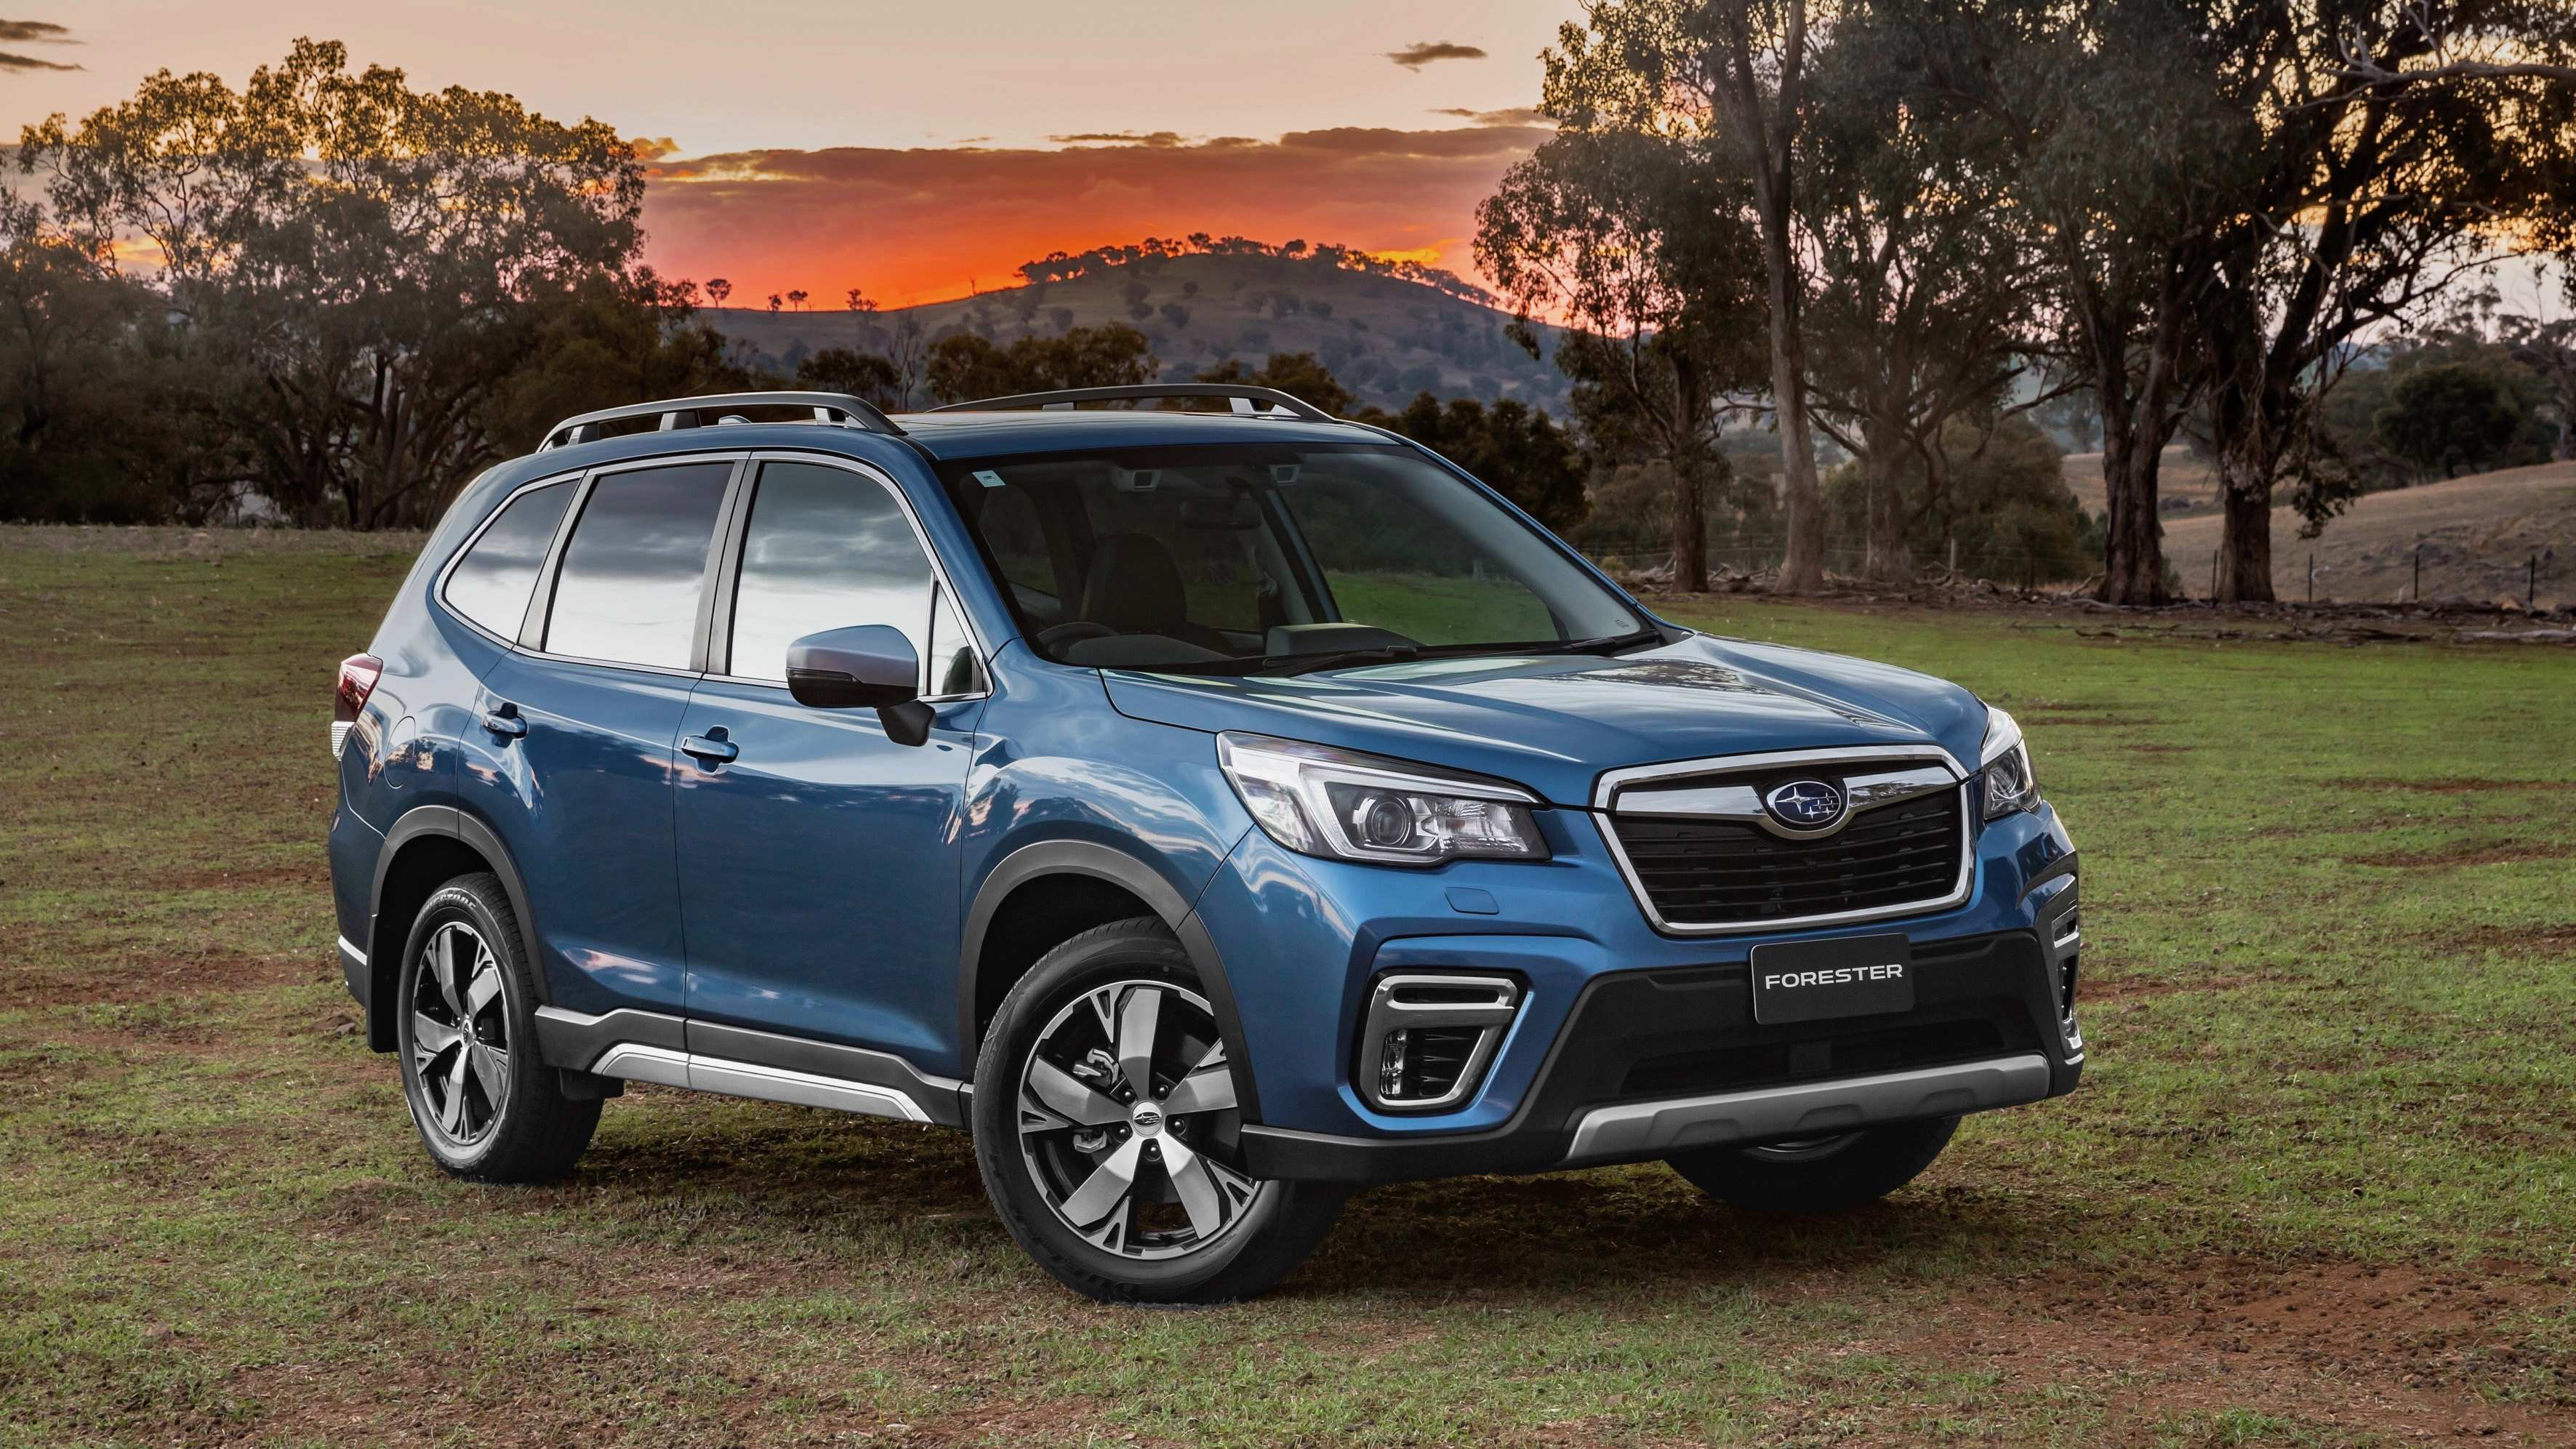 63 Great 2019 Subaru Forester Sport 2 Release Date with 2019 Subaru Forester Sport 2